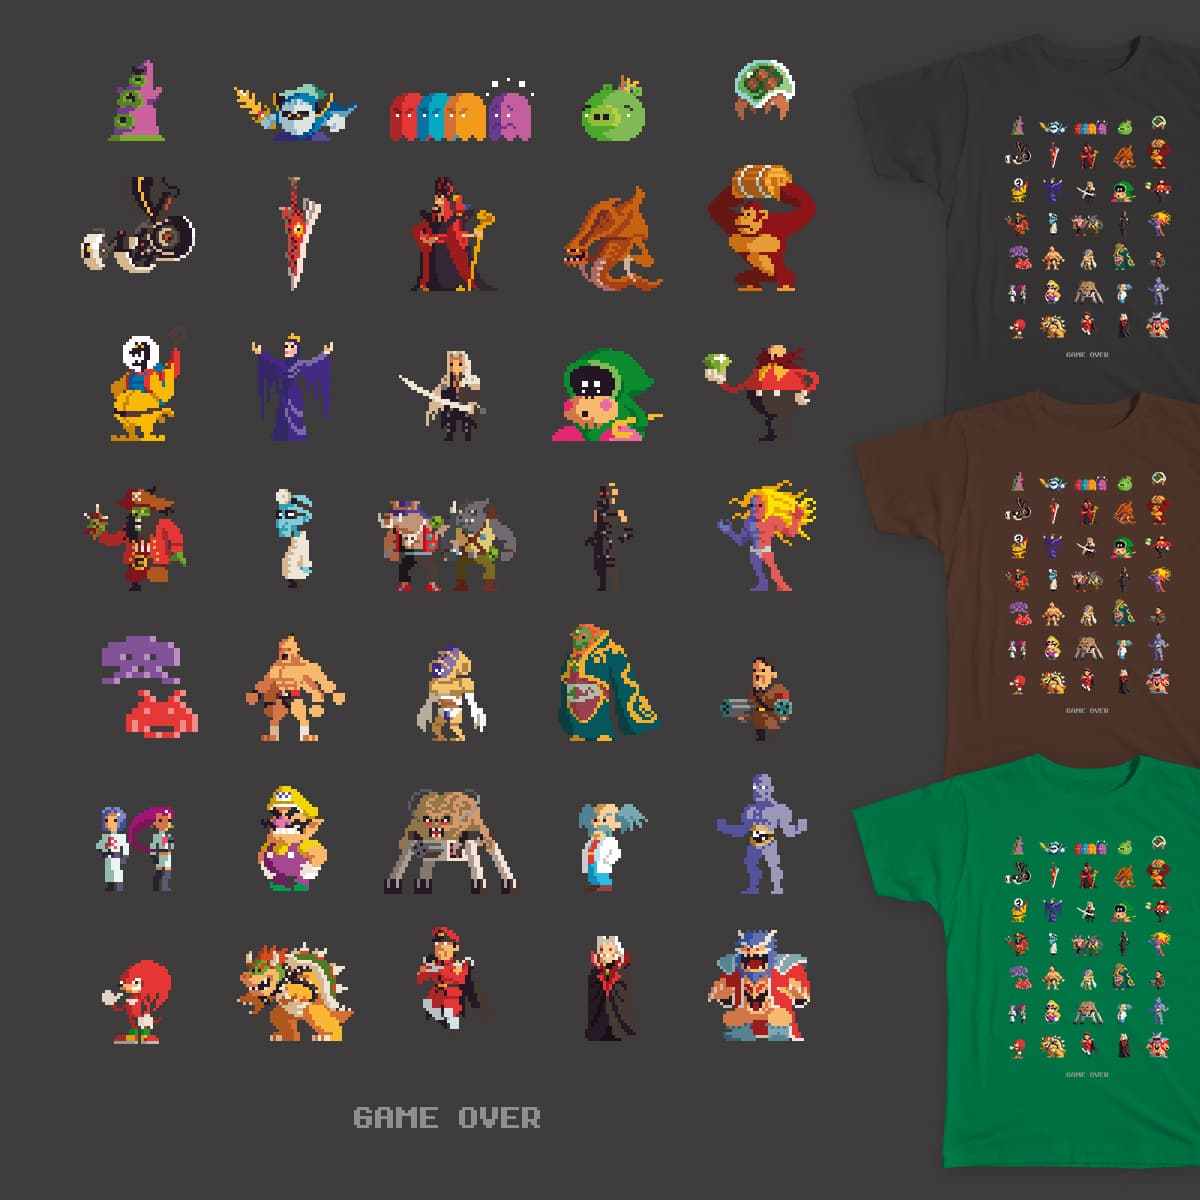 GAME OVER by johanvinet on Threadless